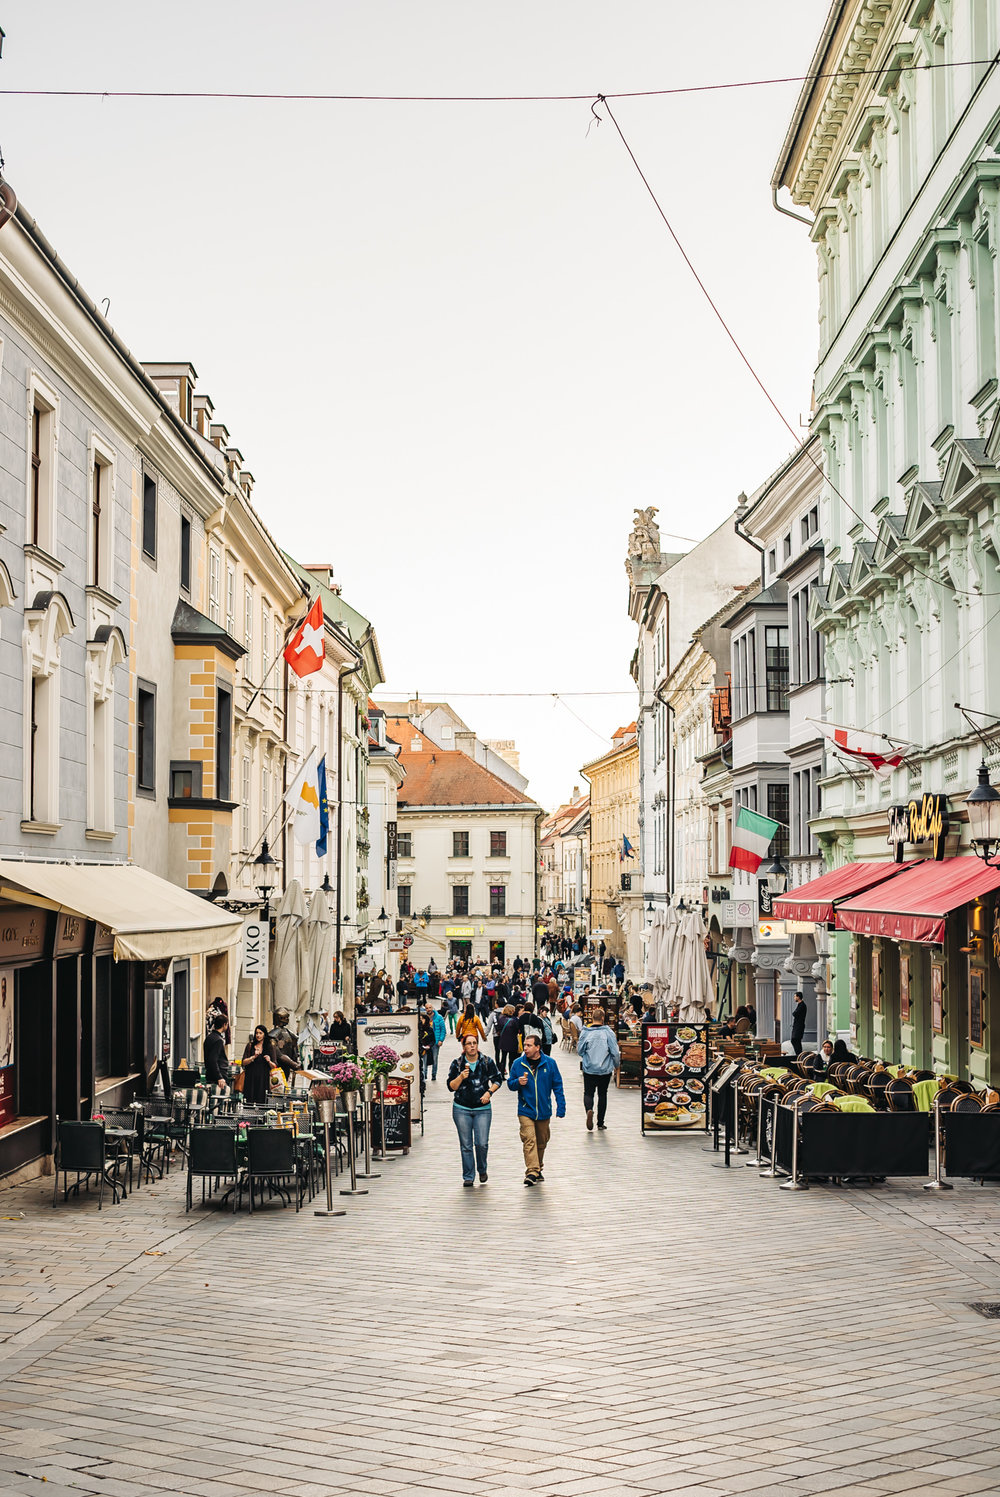 Old Town Bratislava is full of restaurants and shops